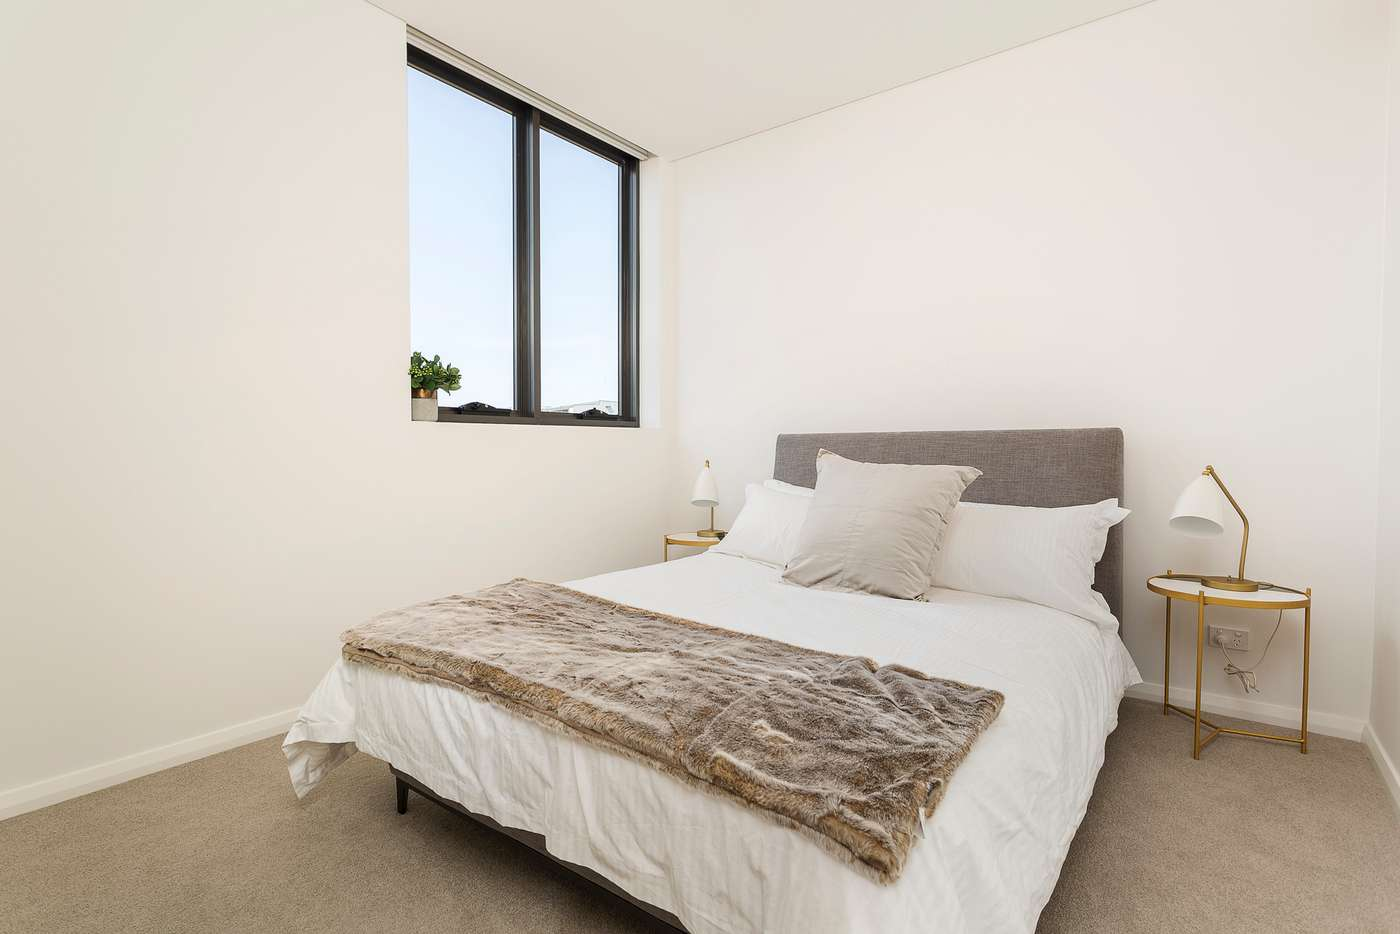 Sixth view of Homely apartment listing, J10080/17 Amalfi Drive, Wentworth Point NSW 2127